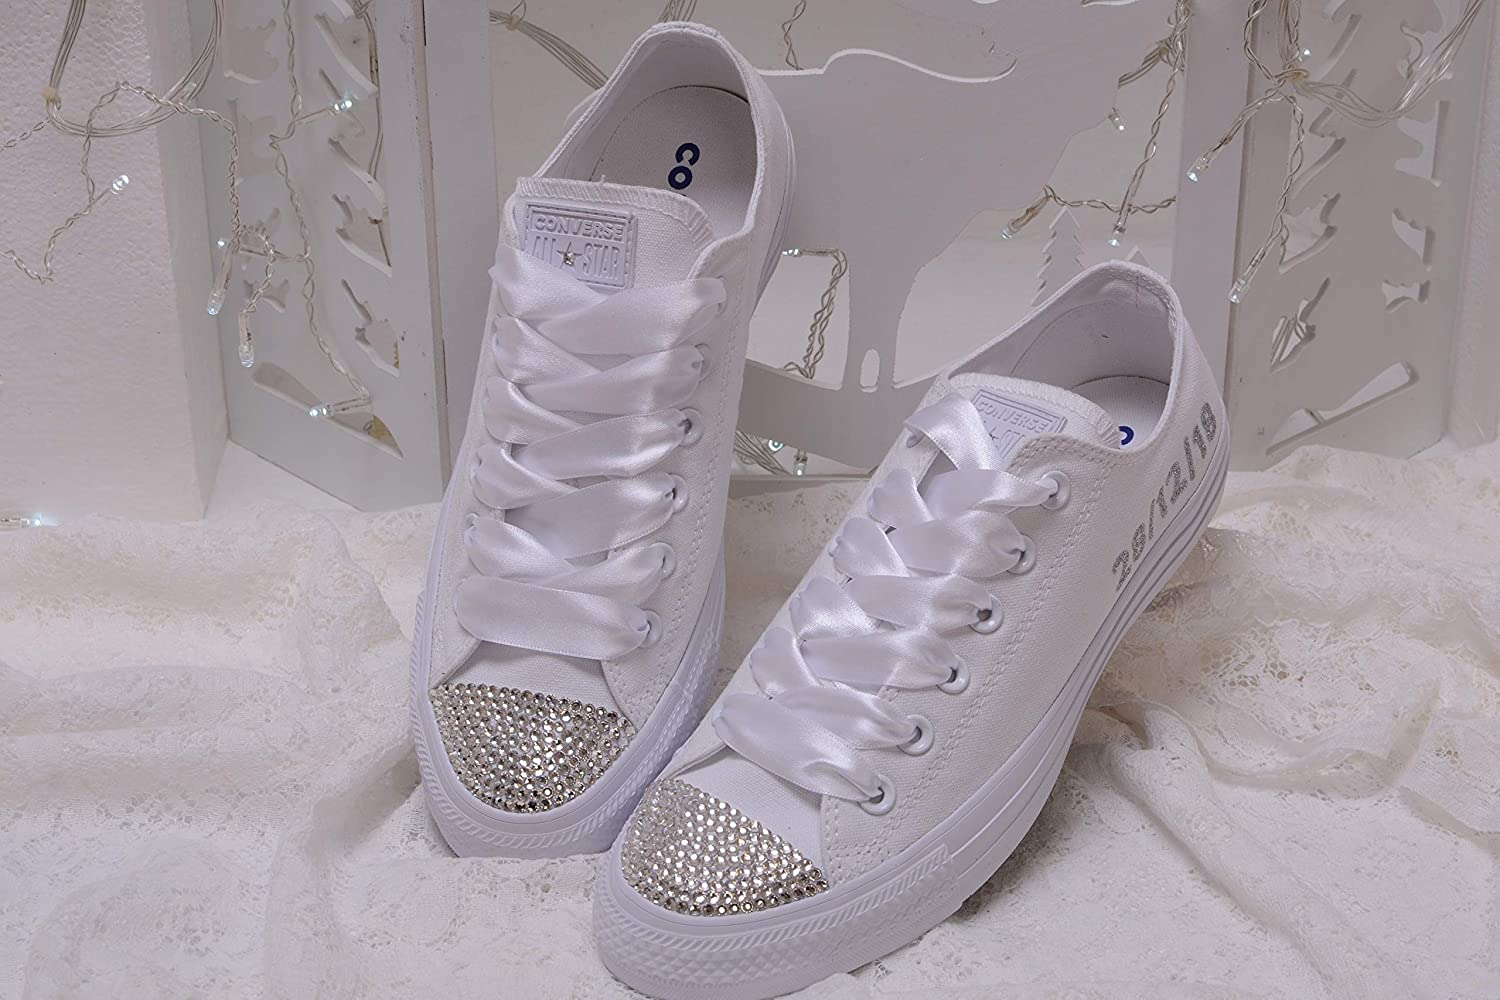 6482c4bd56071 Bling White Monogrammed Wedding Sneakers For Bride, Personalized Bridal  Trainers, Awesome Bride Tennis Shoes